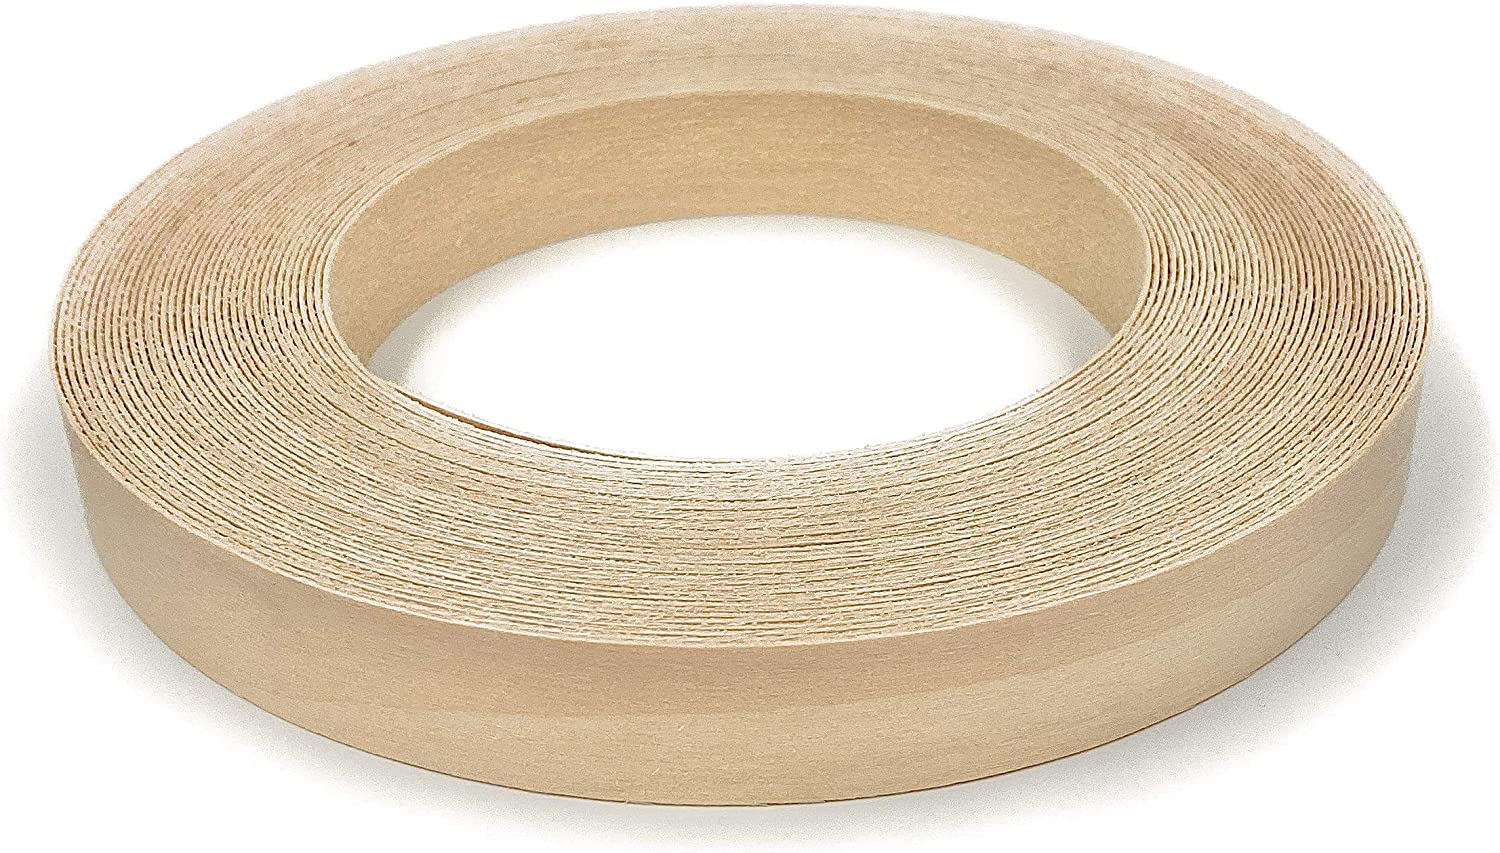 "Edge Supply Birch 3/4"" X 25' Roll of Plywood Edge Banding – Pre-glued Real Wood Veneer Edging – Flexible Veneer Edging – Easy Application Iron-on Edge Banding for Furniture Restoration – Made in USA"